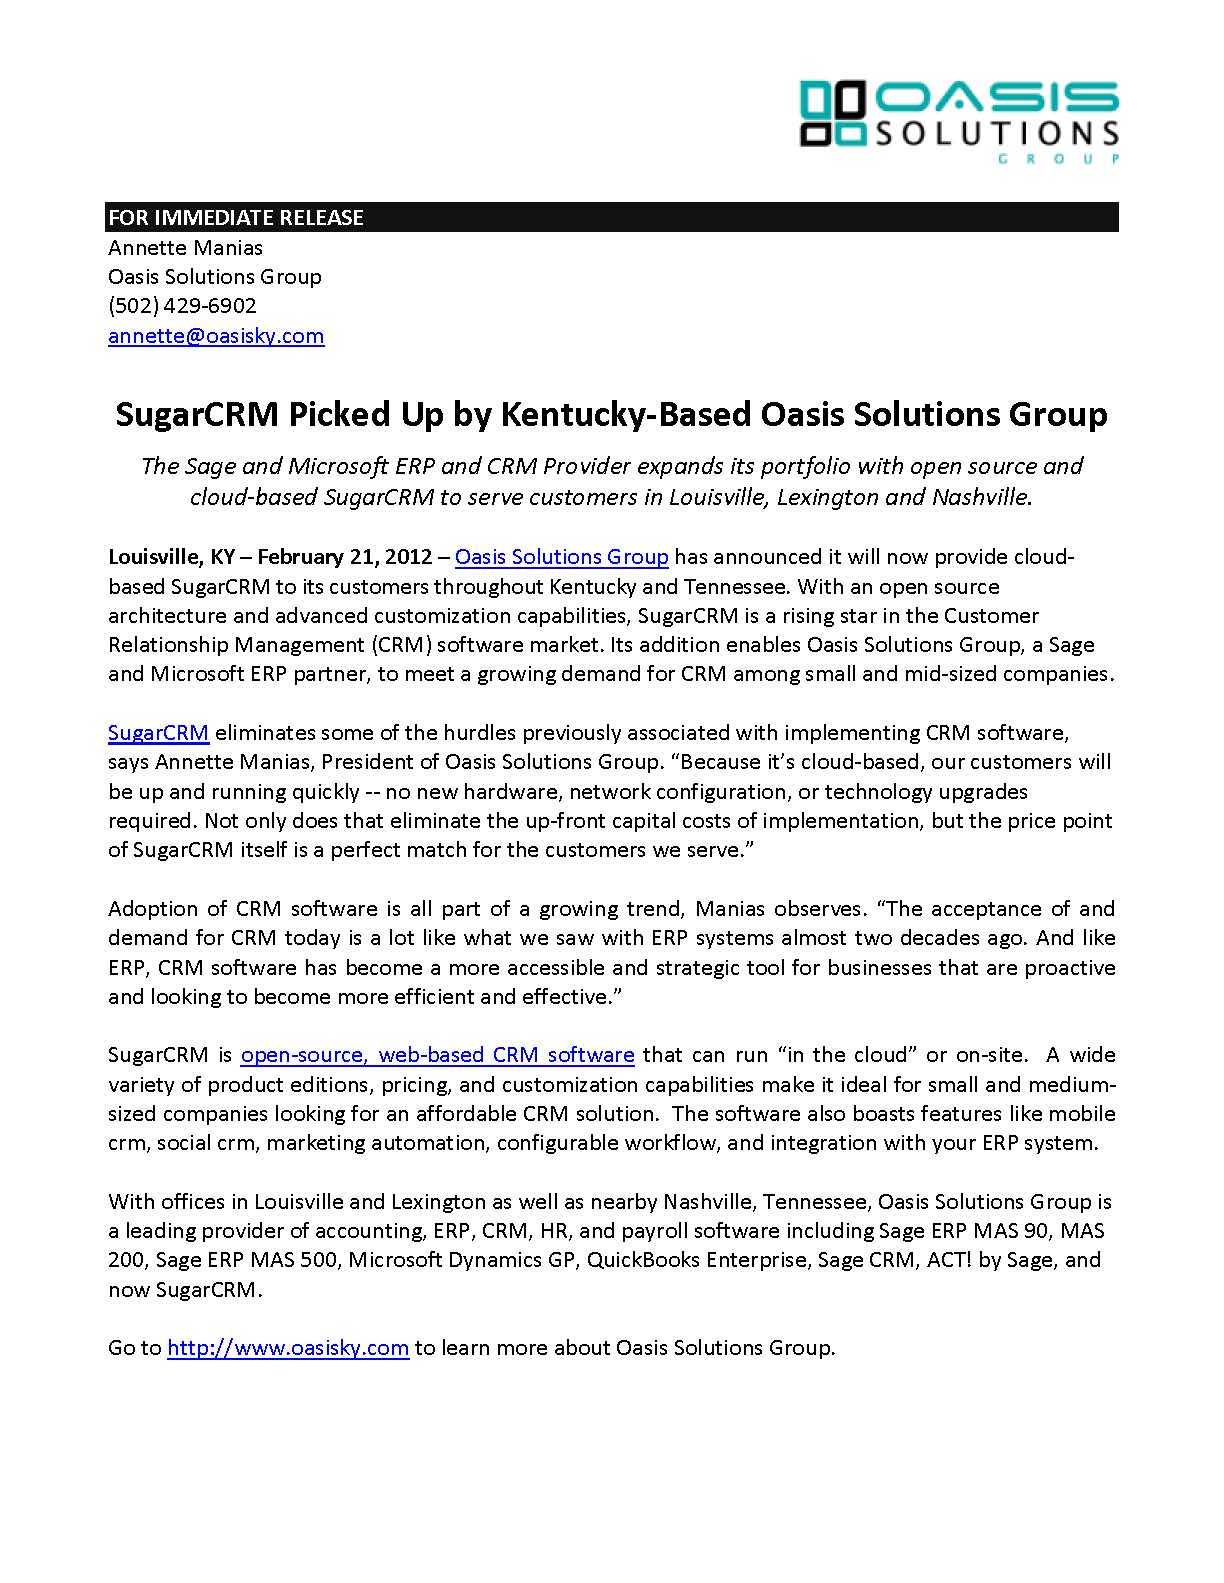 Oasis - SugarCRM Press Release